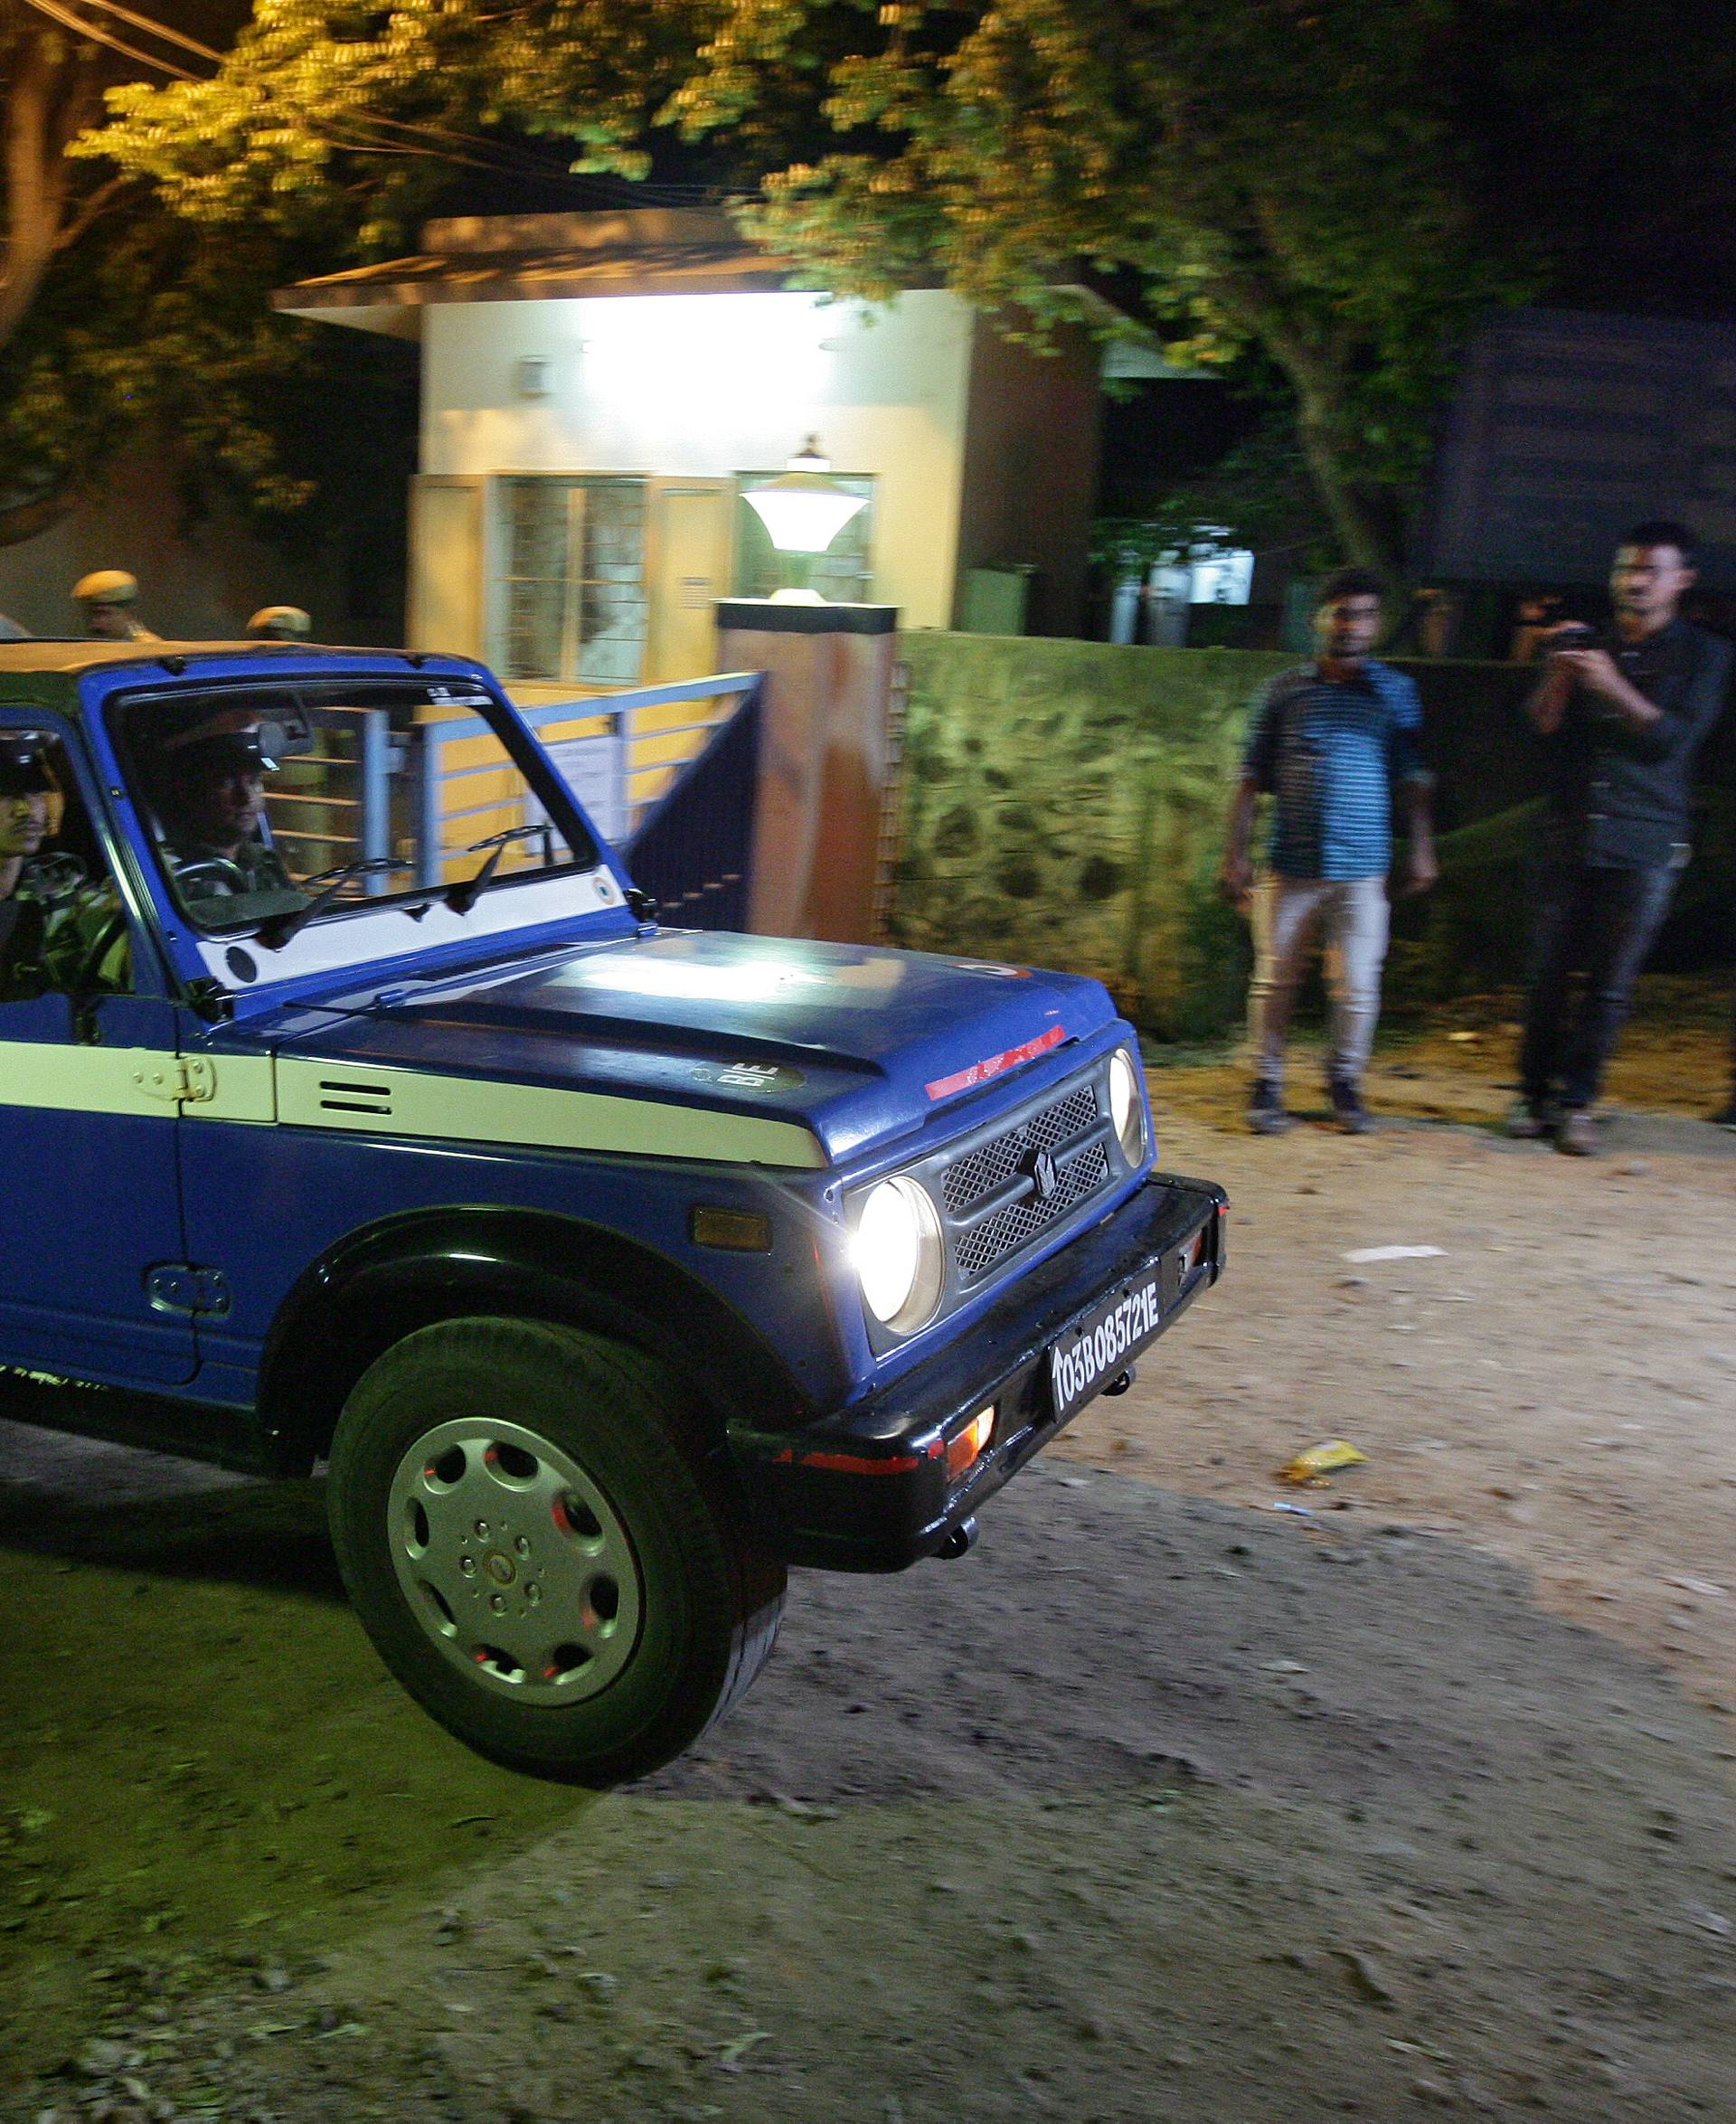 An Indian Air Force vehicle leaves the house of a pilot who was captured by Pakistan, in the southern city of Chennai